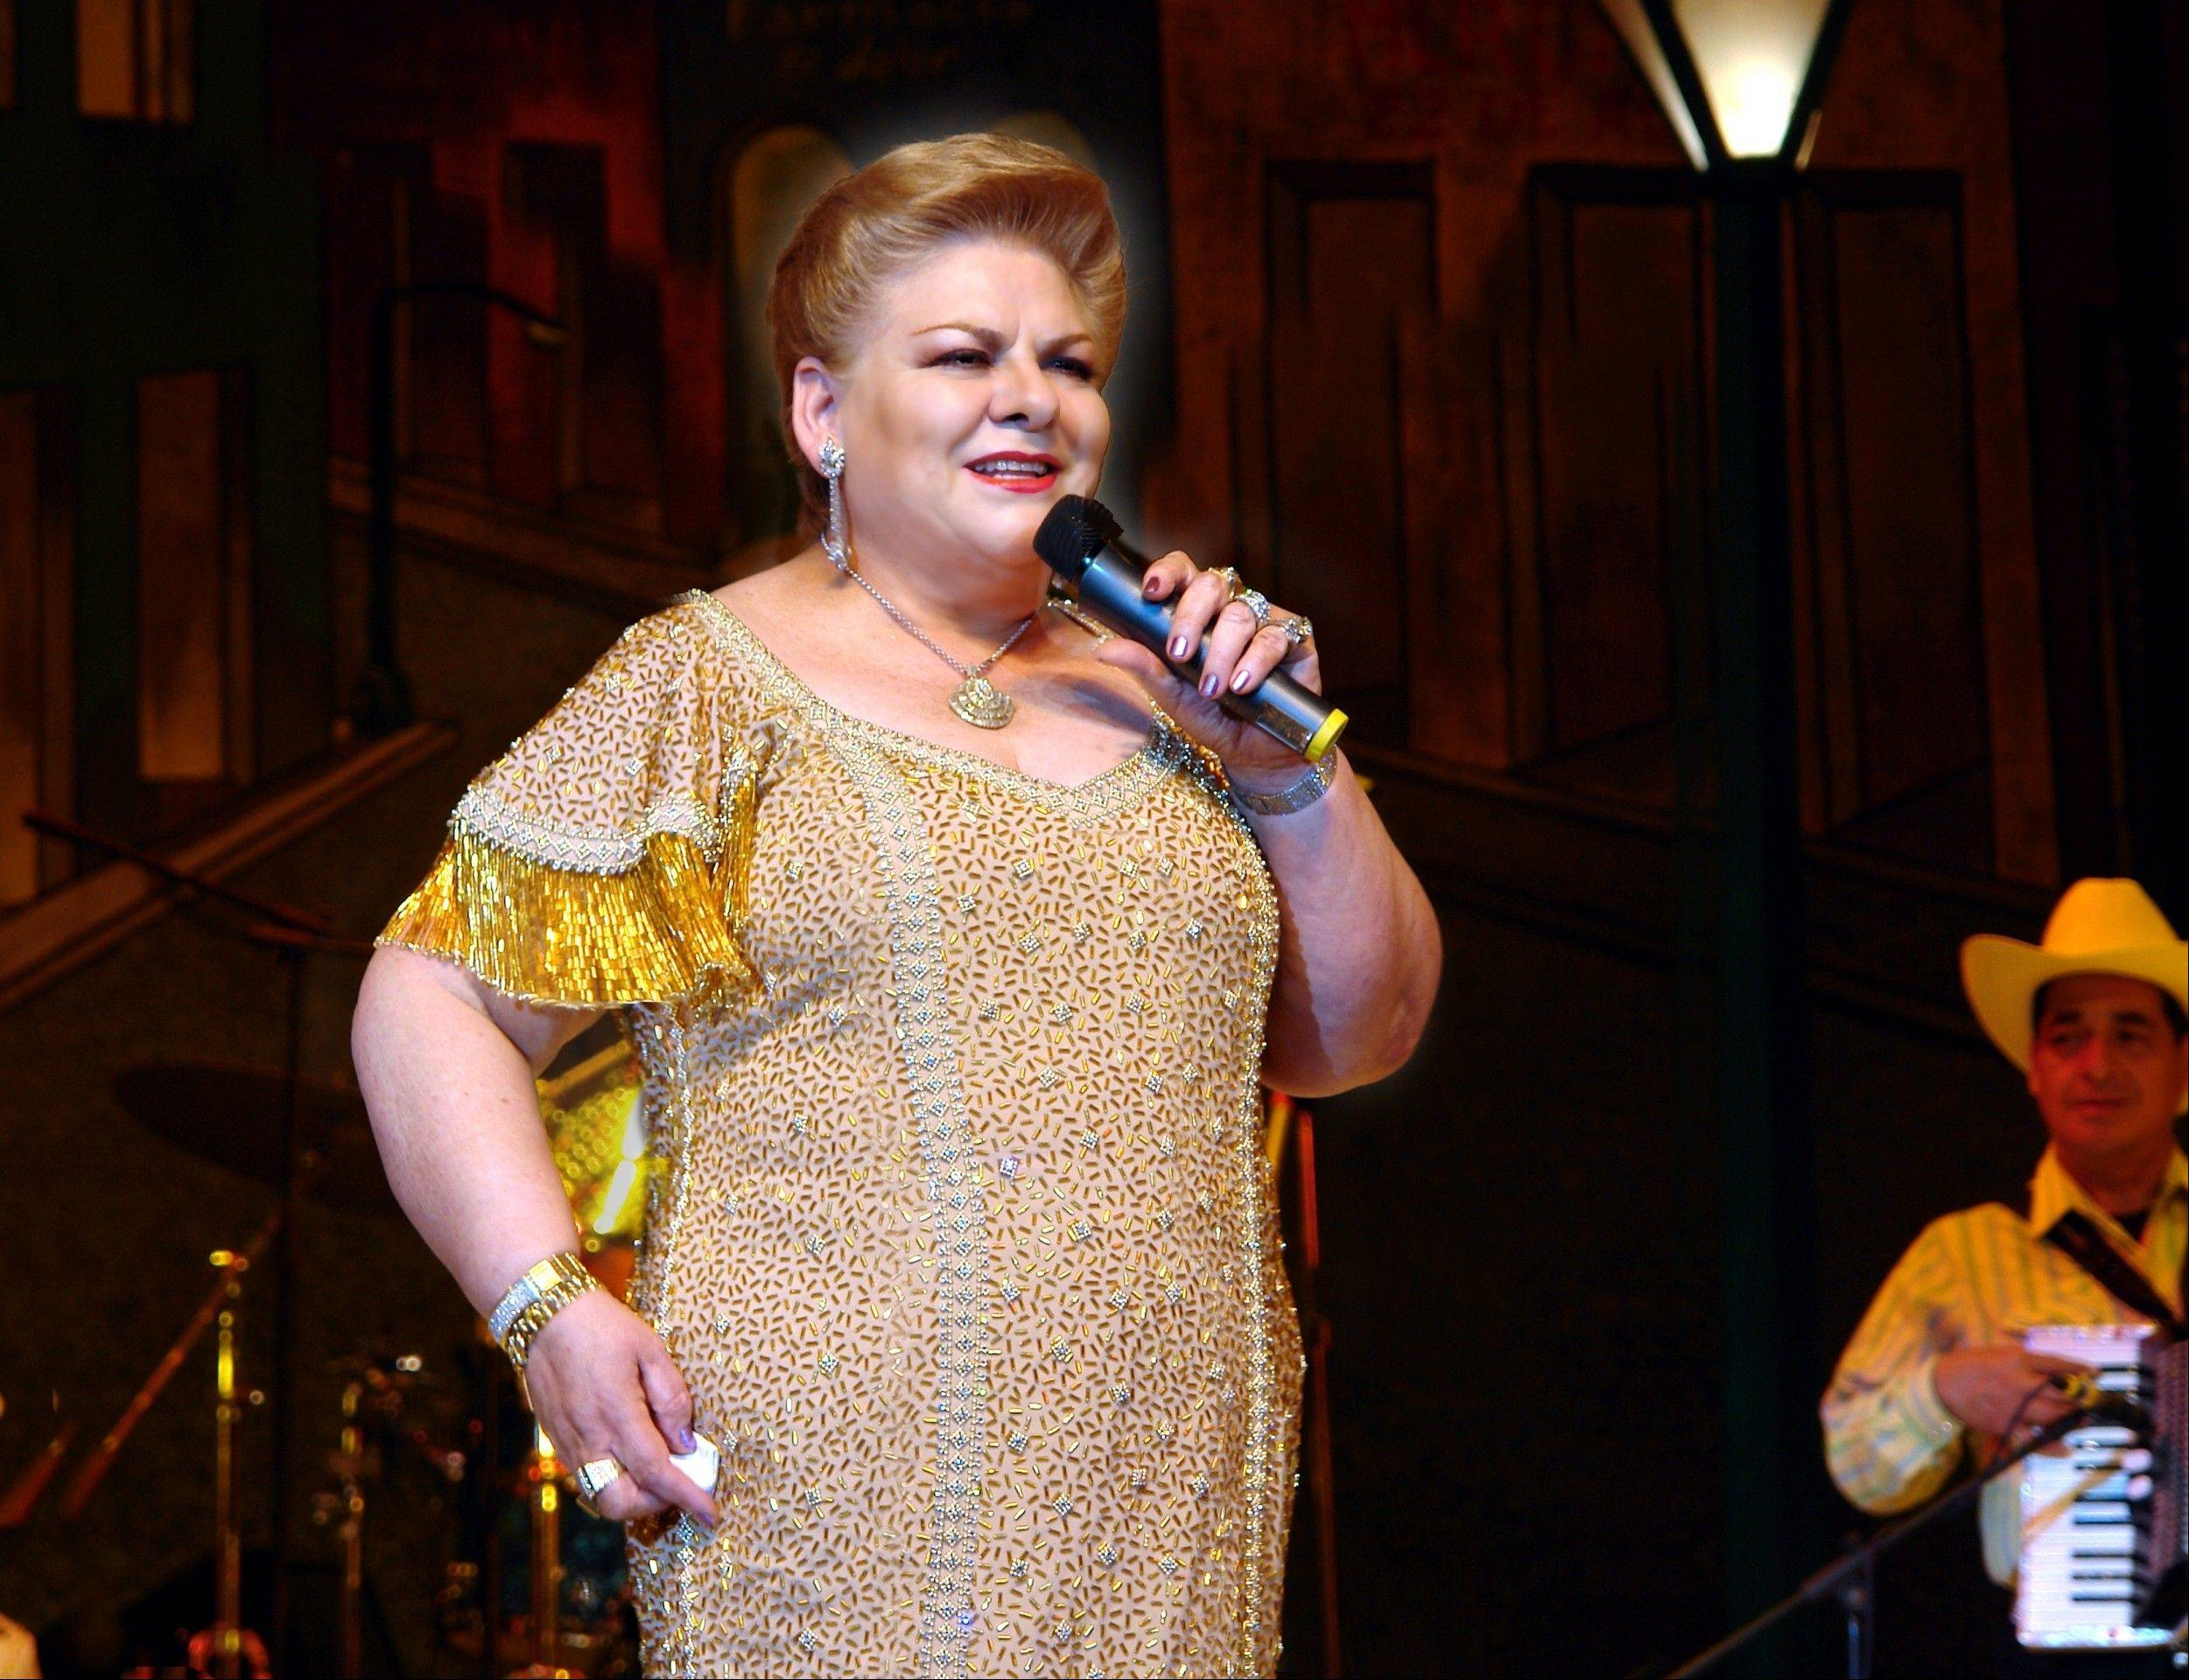 Paquita La Del Barrio (pictured) and Alfredo Bojorquez (aka �El Puma�) are replacing Joan Sebastian and Ram�n Ayala on Friday, Sept. 13, at RiverEdge Park in Aurora.